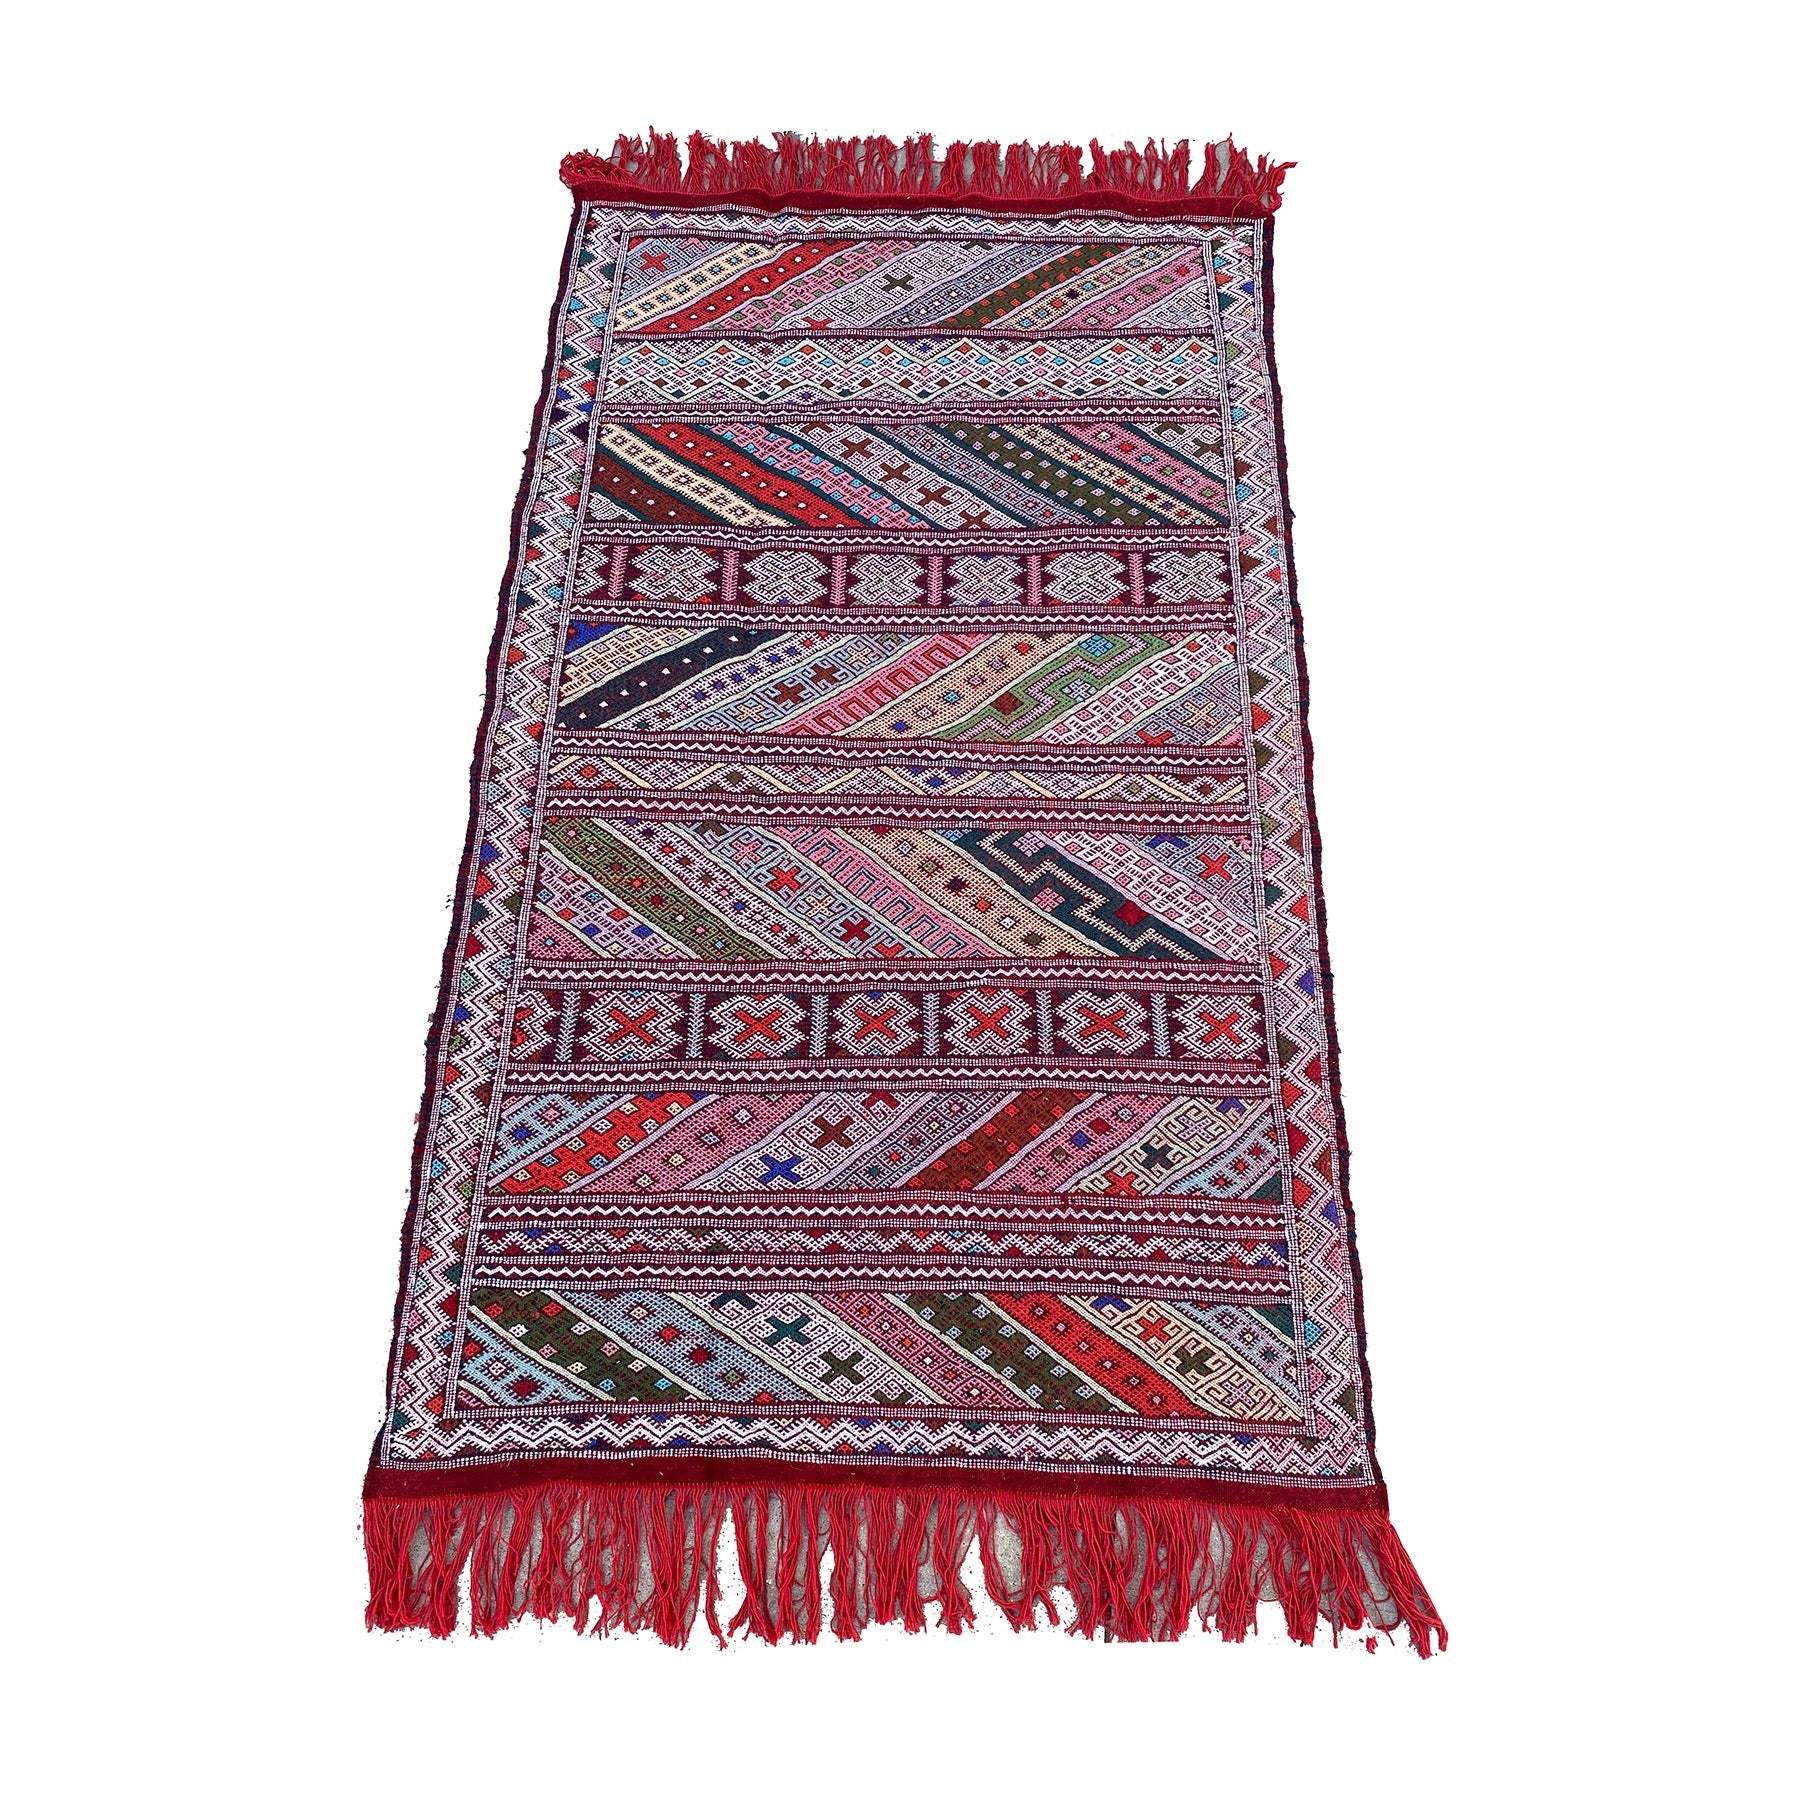 Red and pink flatwoven Moroccan kilim playroom rug - Kantara | Moroccan Rugs